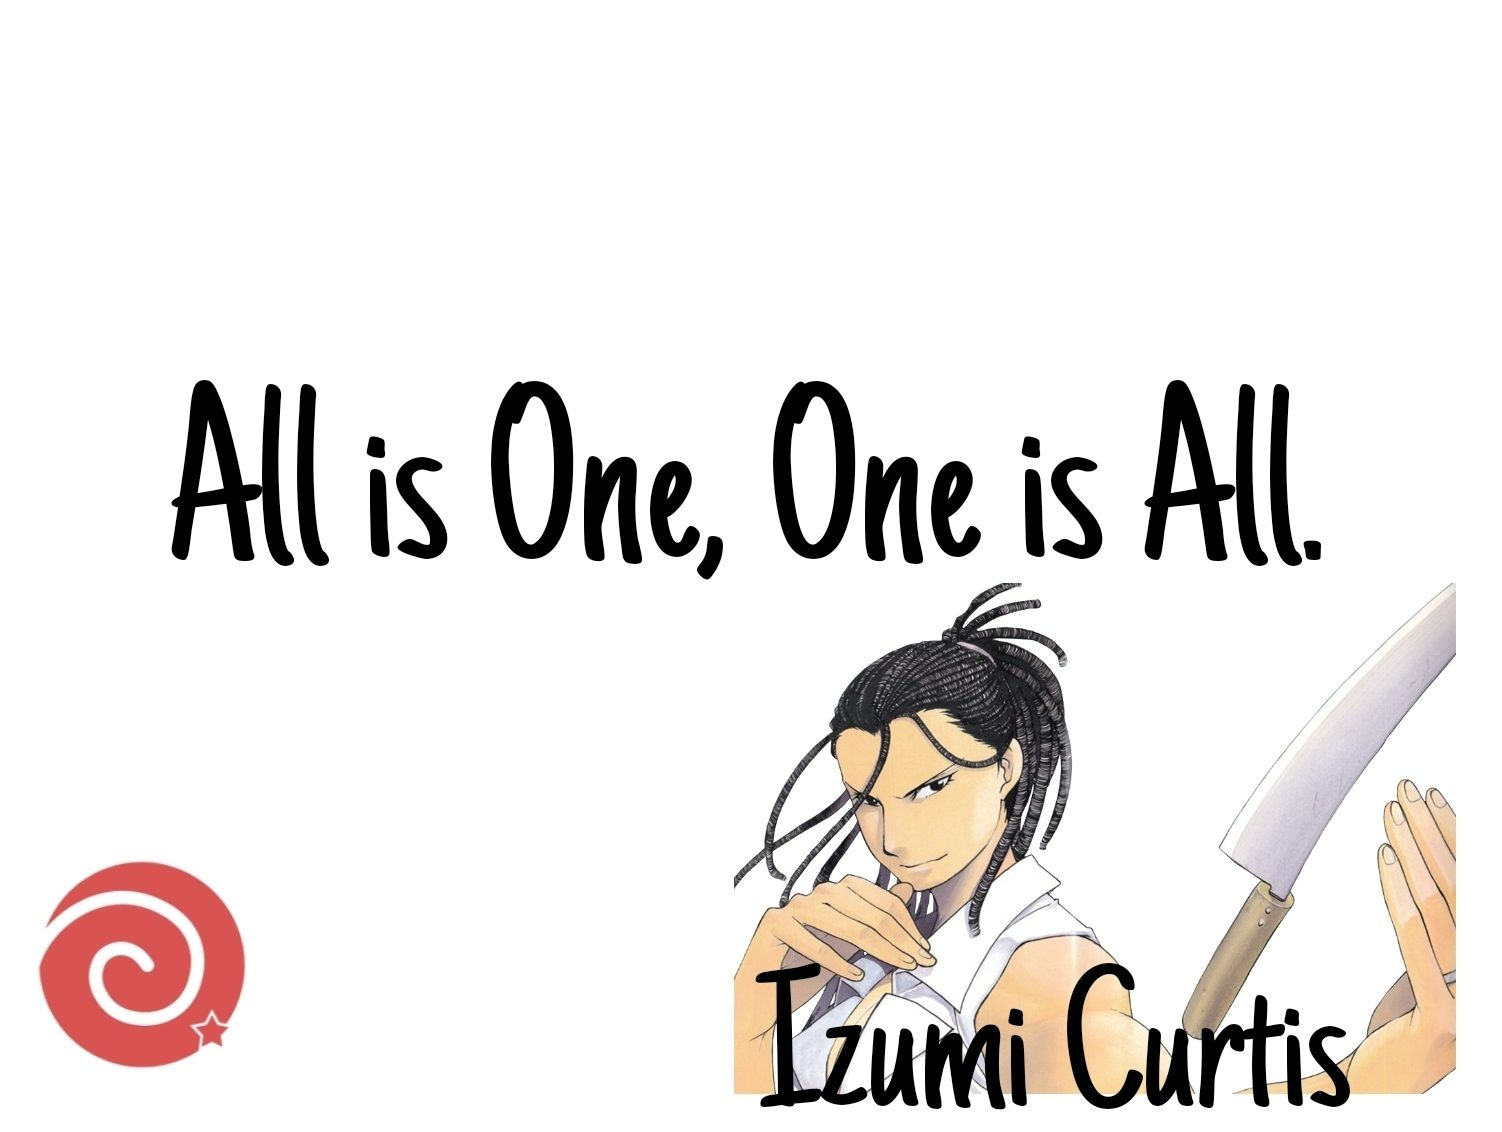 Quotes by Izumi Curtis